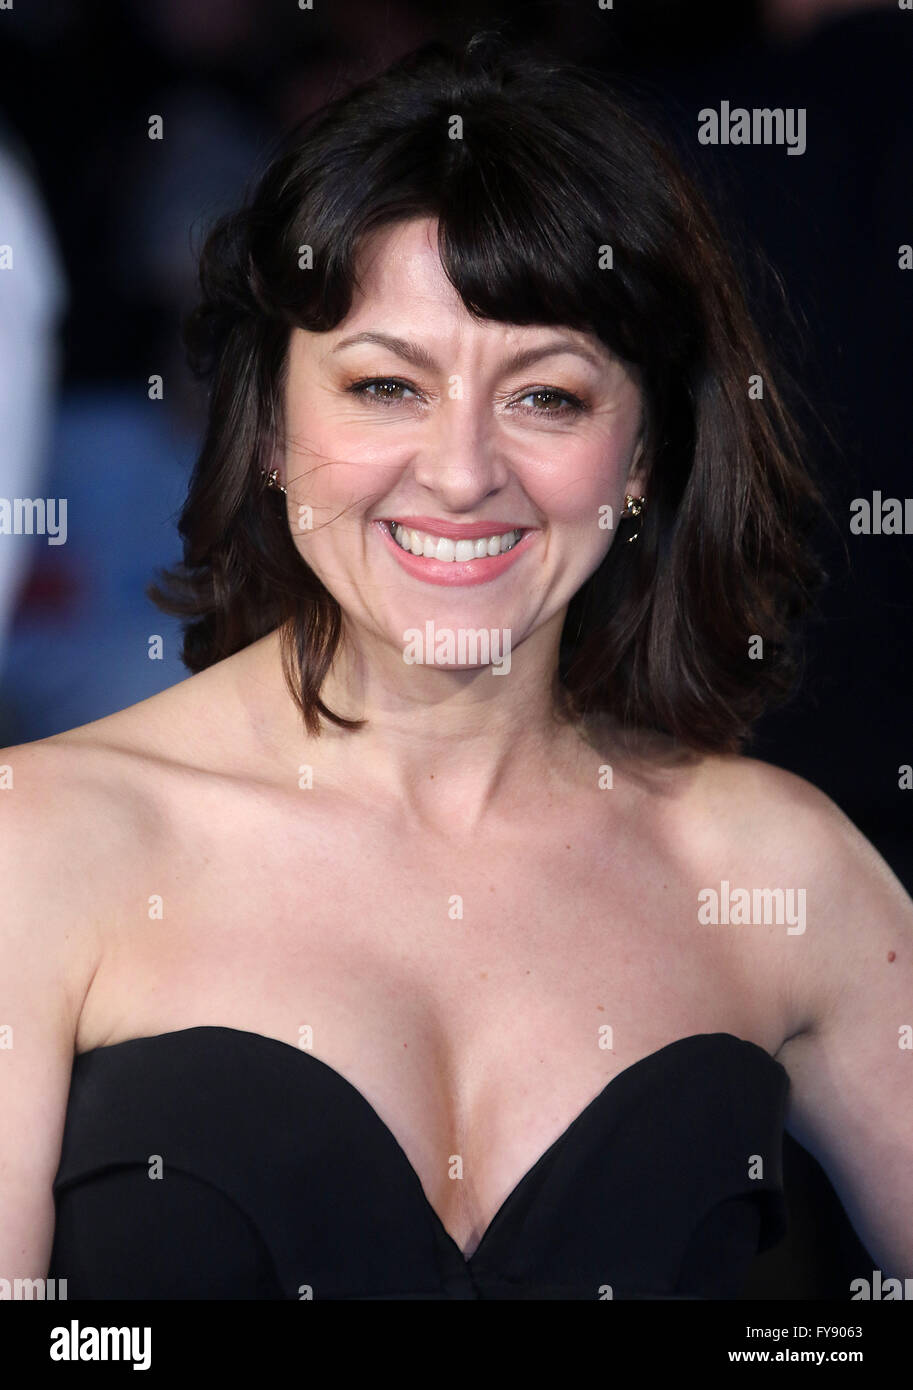 jo hartley hot